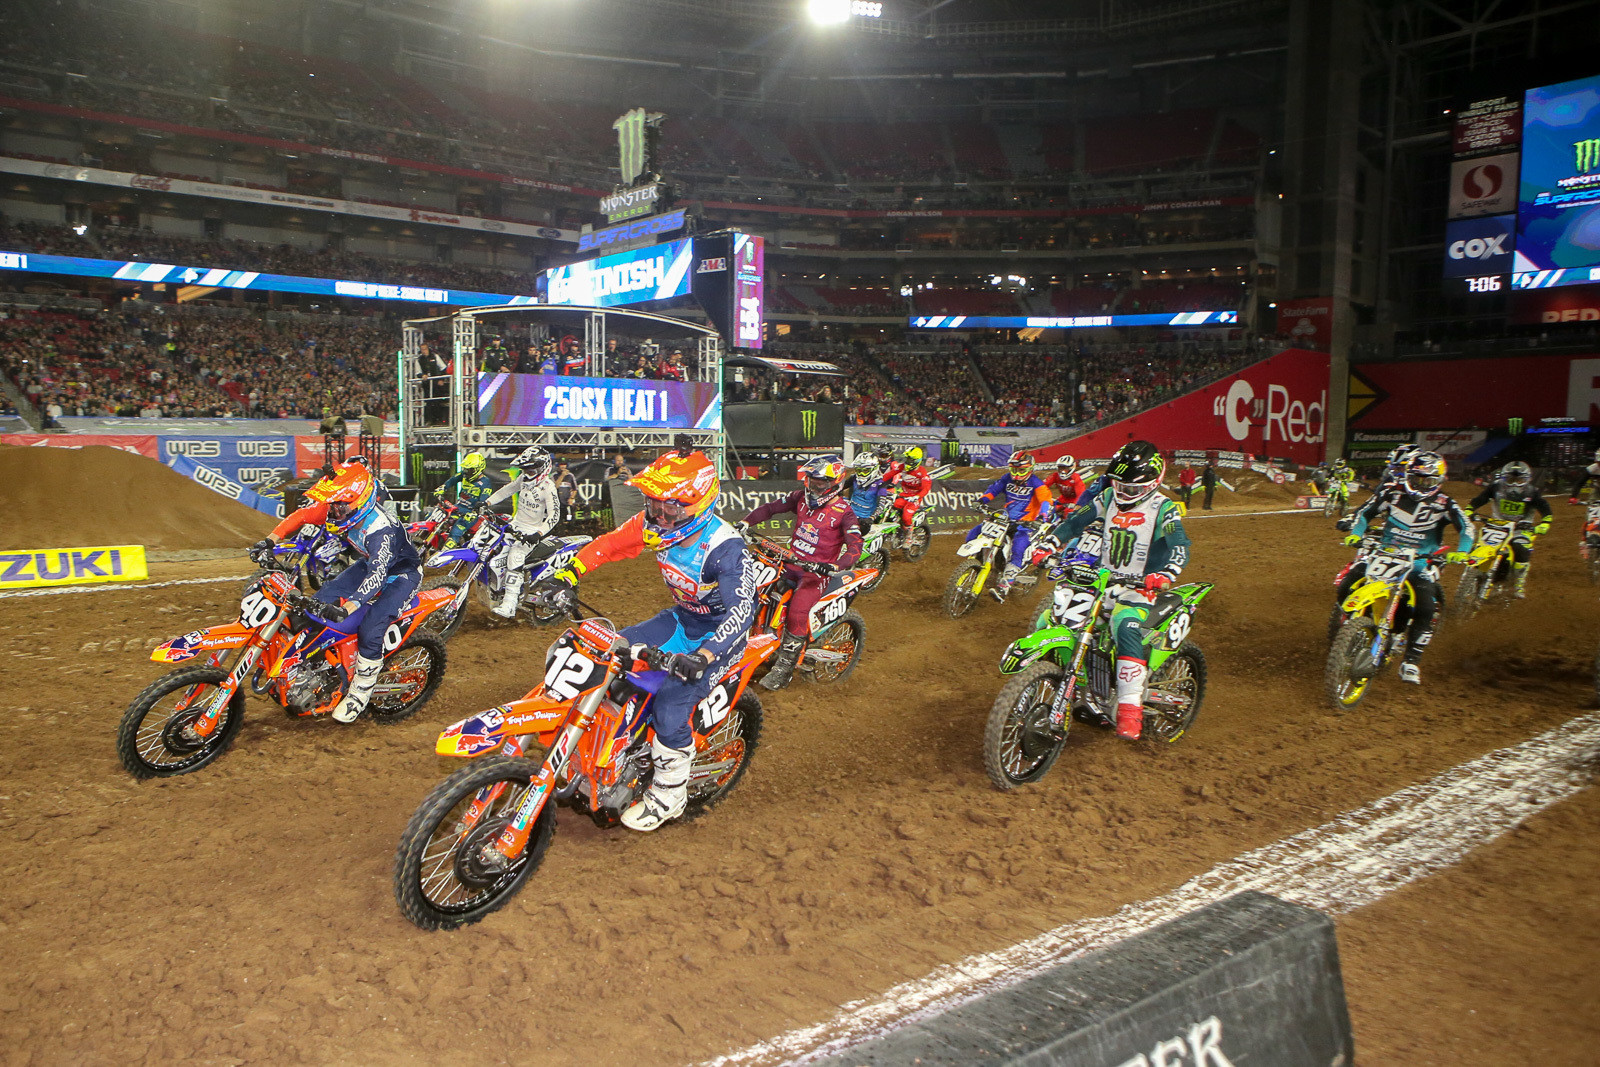 It was all Troy Lee Designs/Red Bull/KTM with Sean Cantrell and Shane McElrath up front as the riders got to the first turn at the end of the long start straight to start the night in 250 heat one. Adam Cianciarulo (92) came through to take the win in this one.